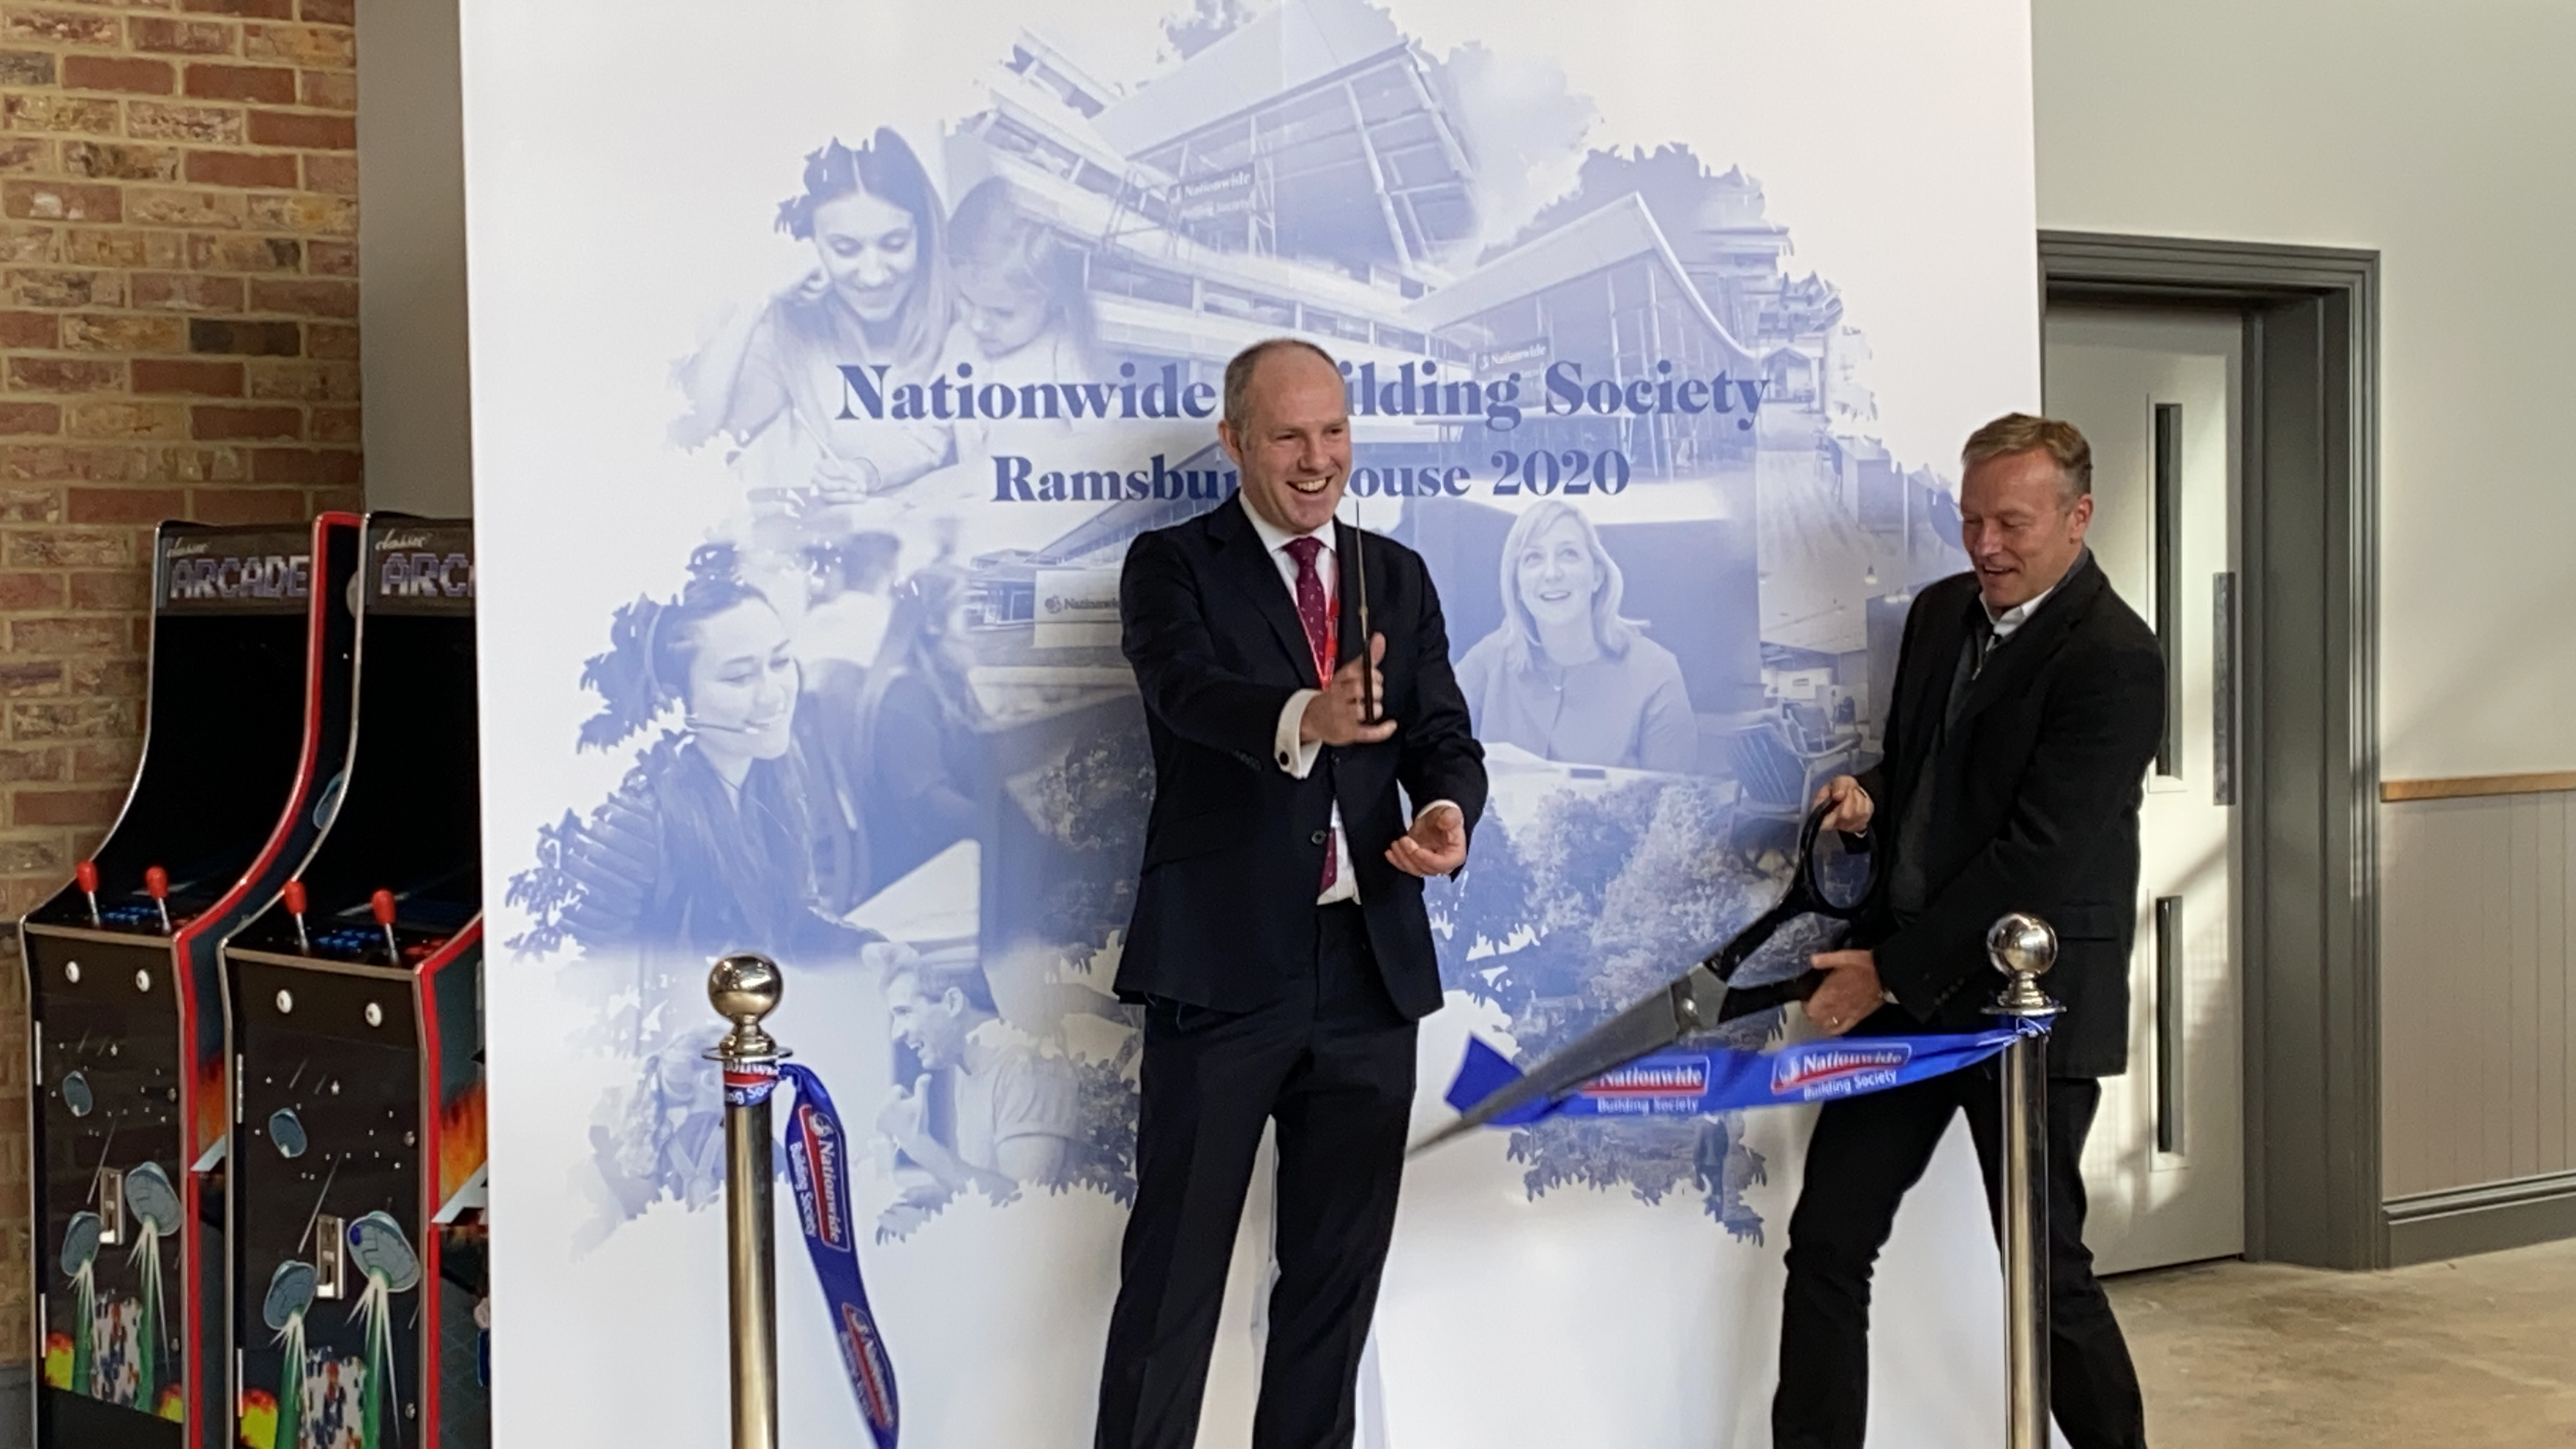 Justin Praises Nationwide's Innovative New Building